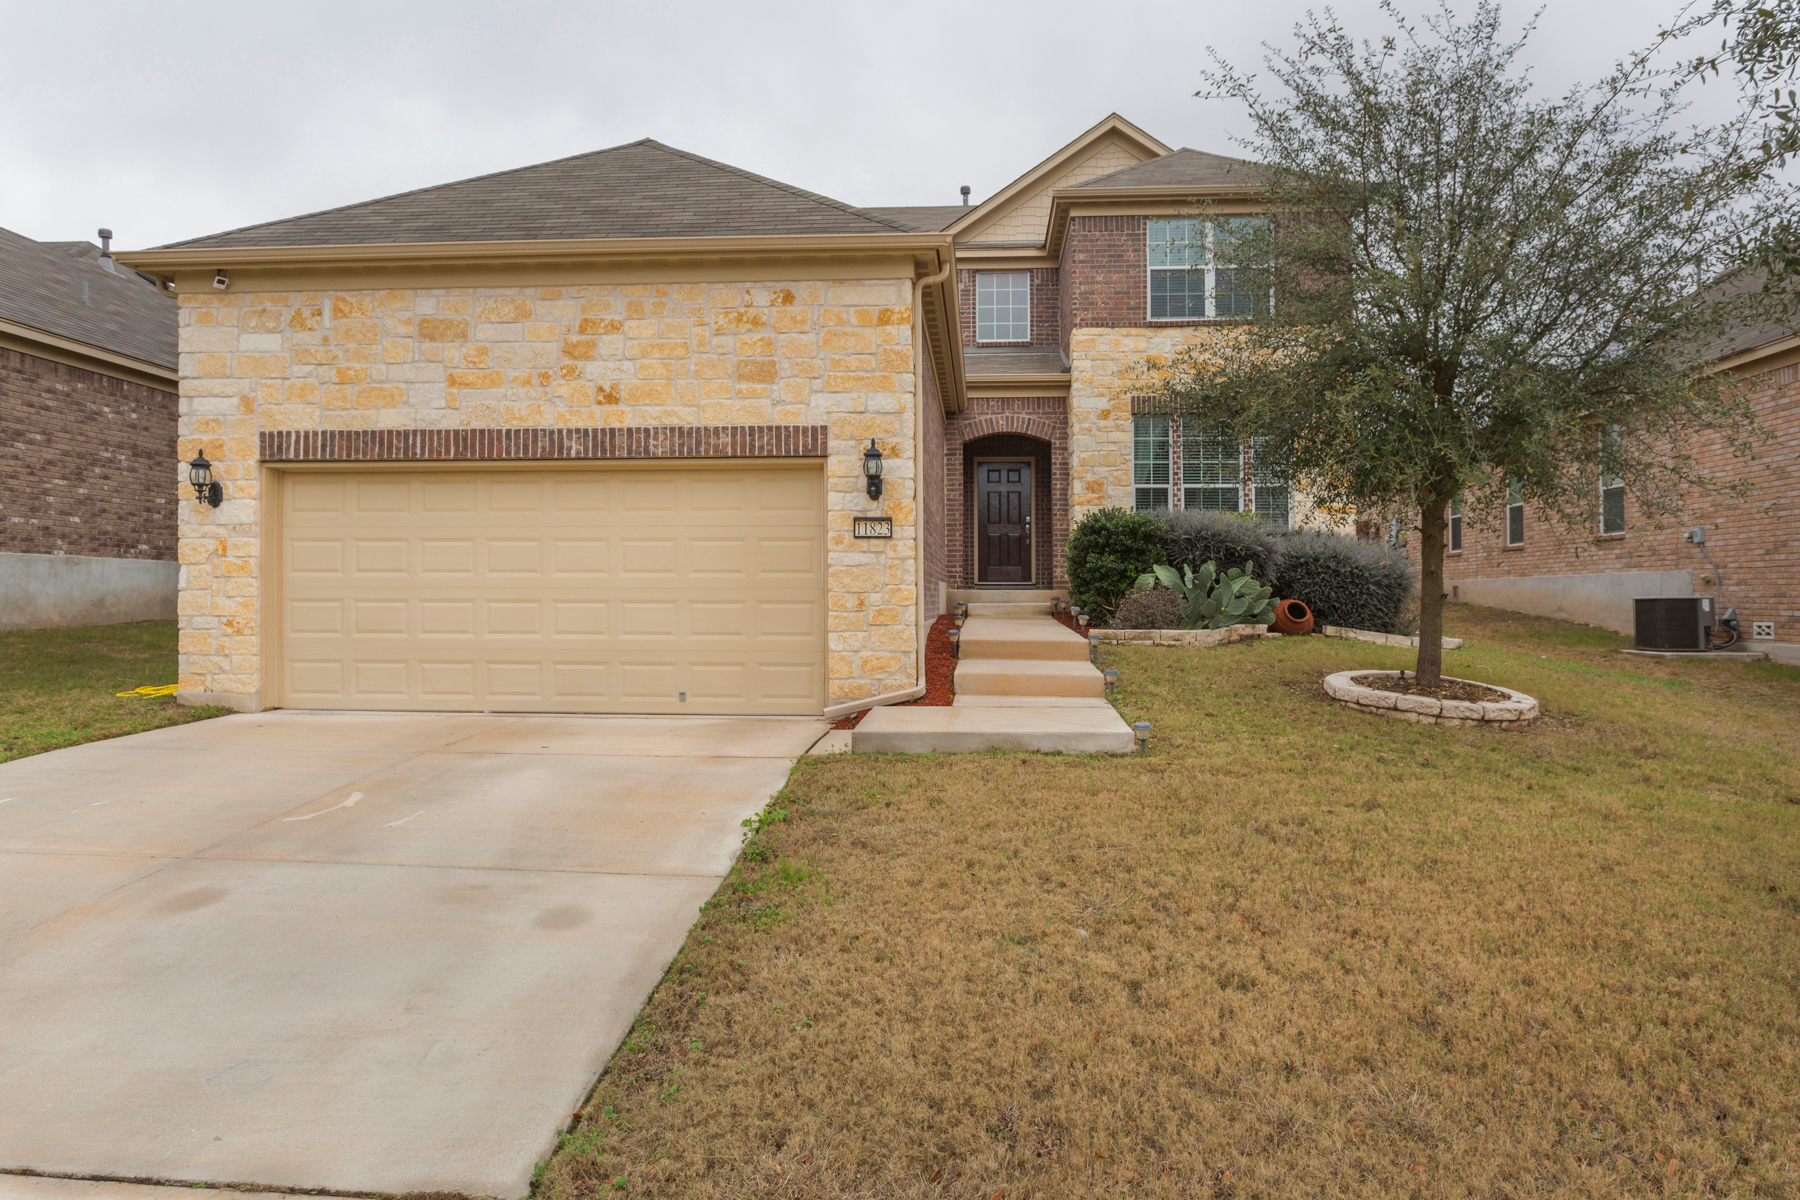 Single Family Home for Sale at Immaculate Home in Alamo Ranch 11823 Elijah Stapp San Antonio, Texas 78253 United States